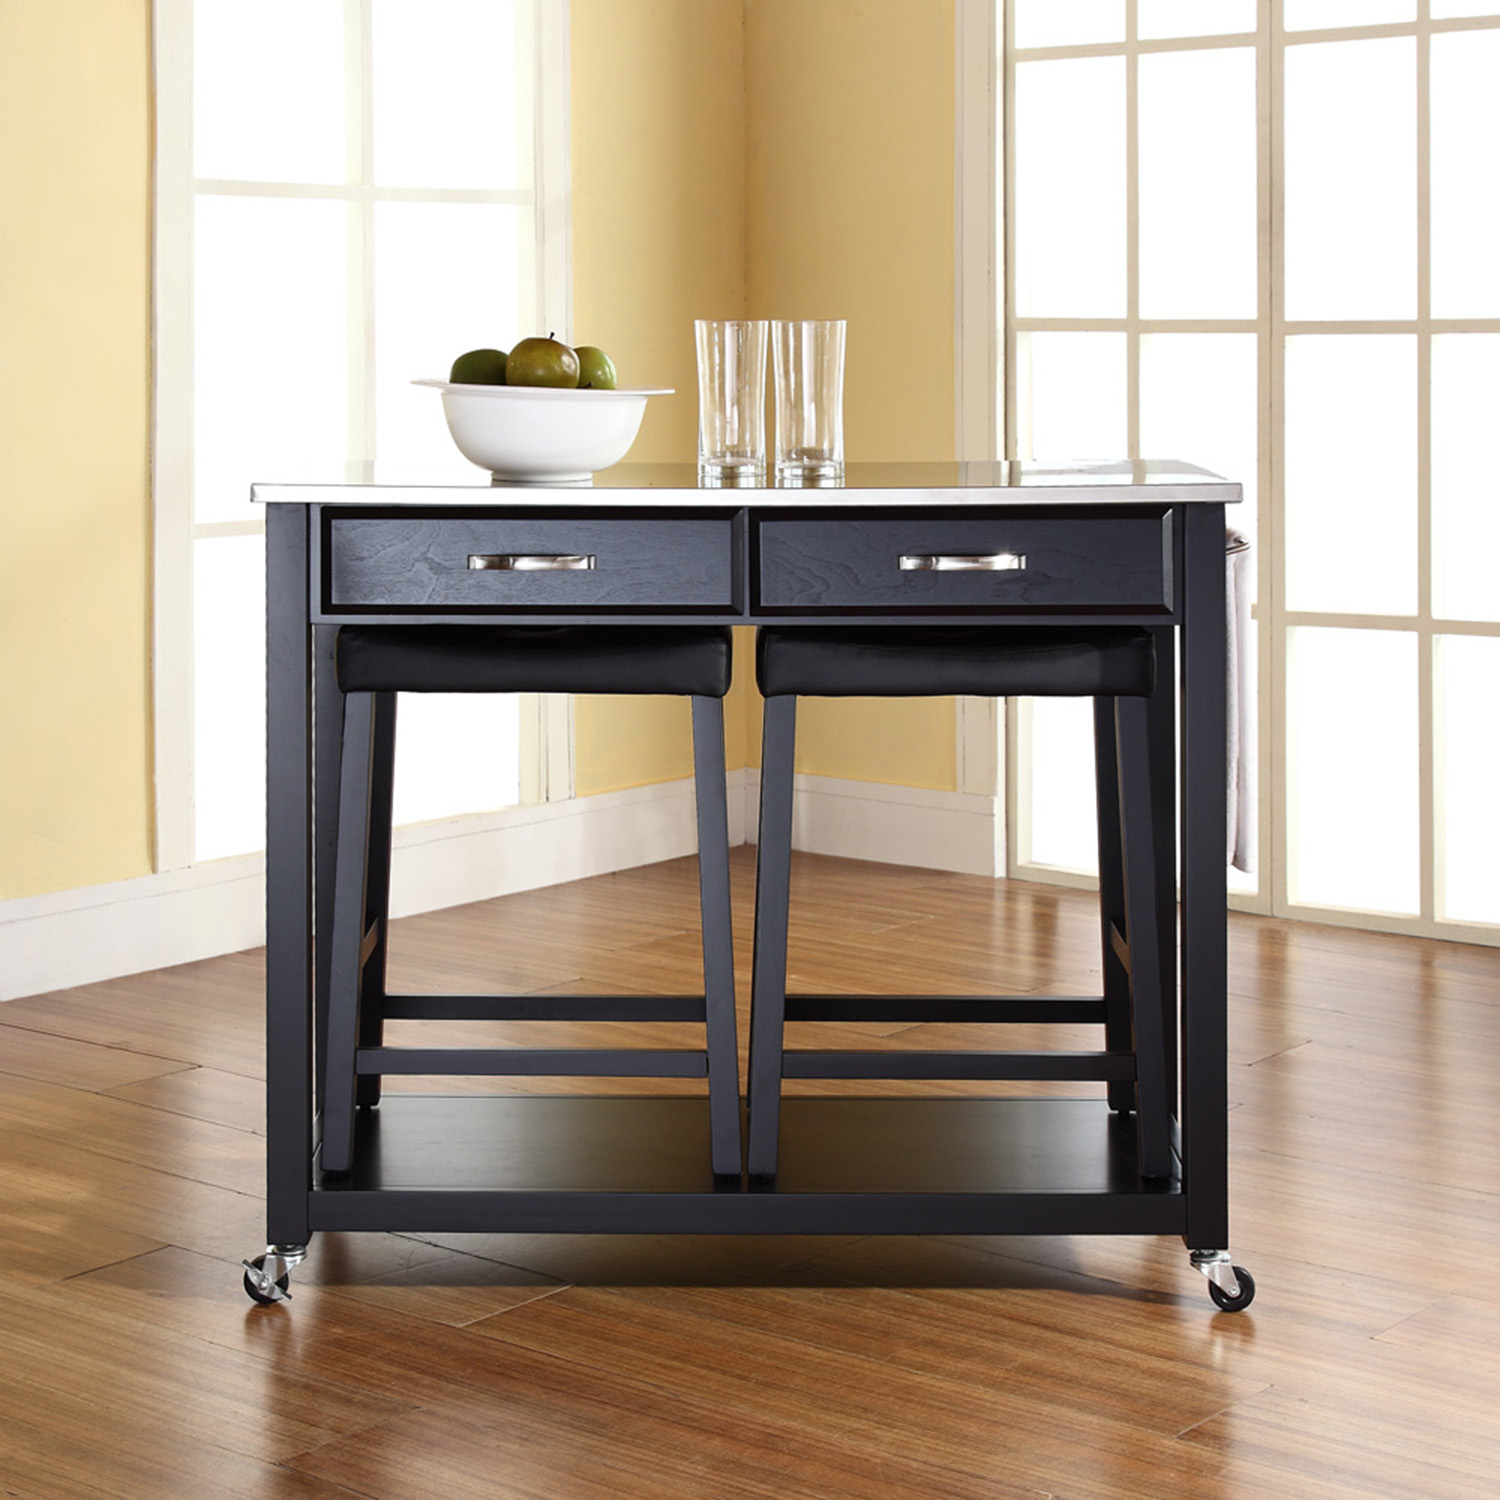 Stainless Steel Top Kitchen Island Counter Height Utility: Stainless Steel Top Kitchen Island Cart And Saddle Stools